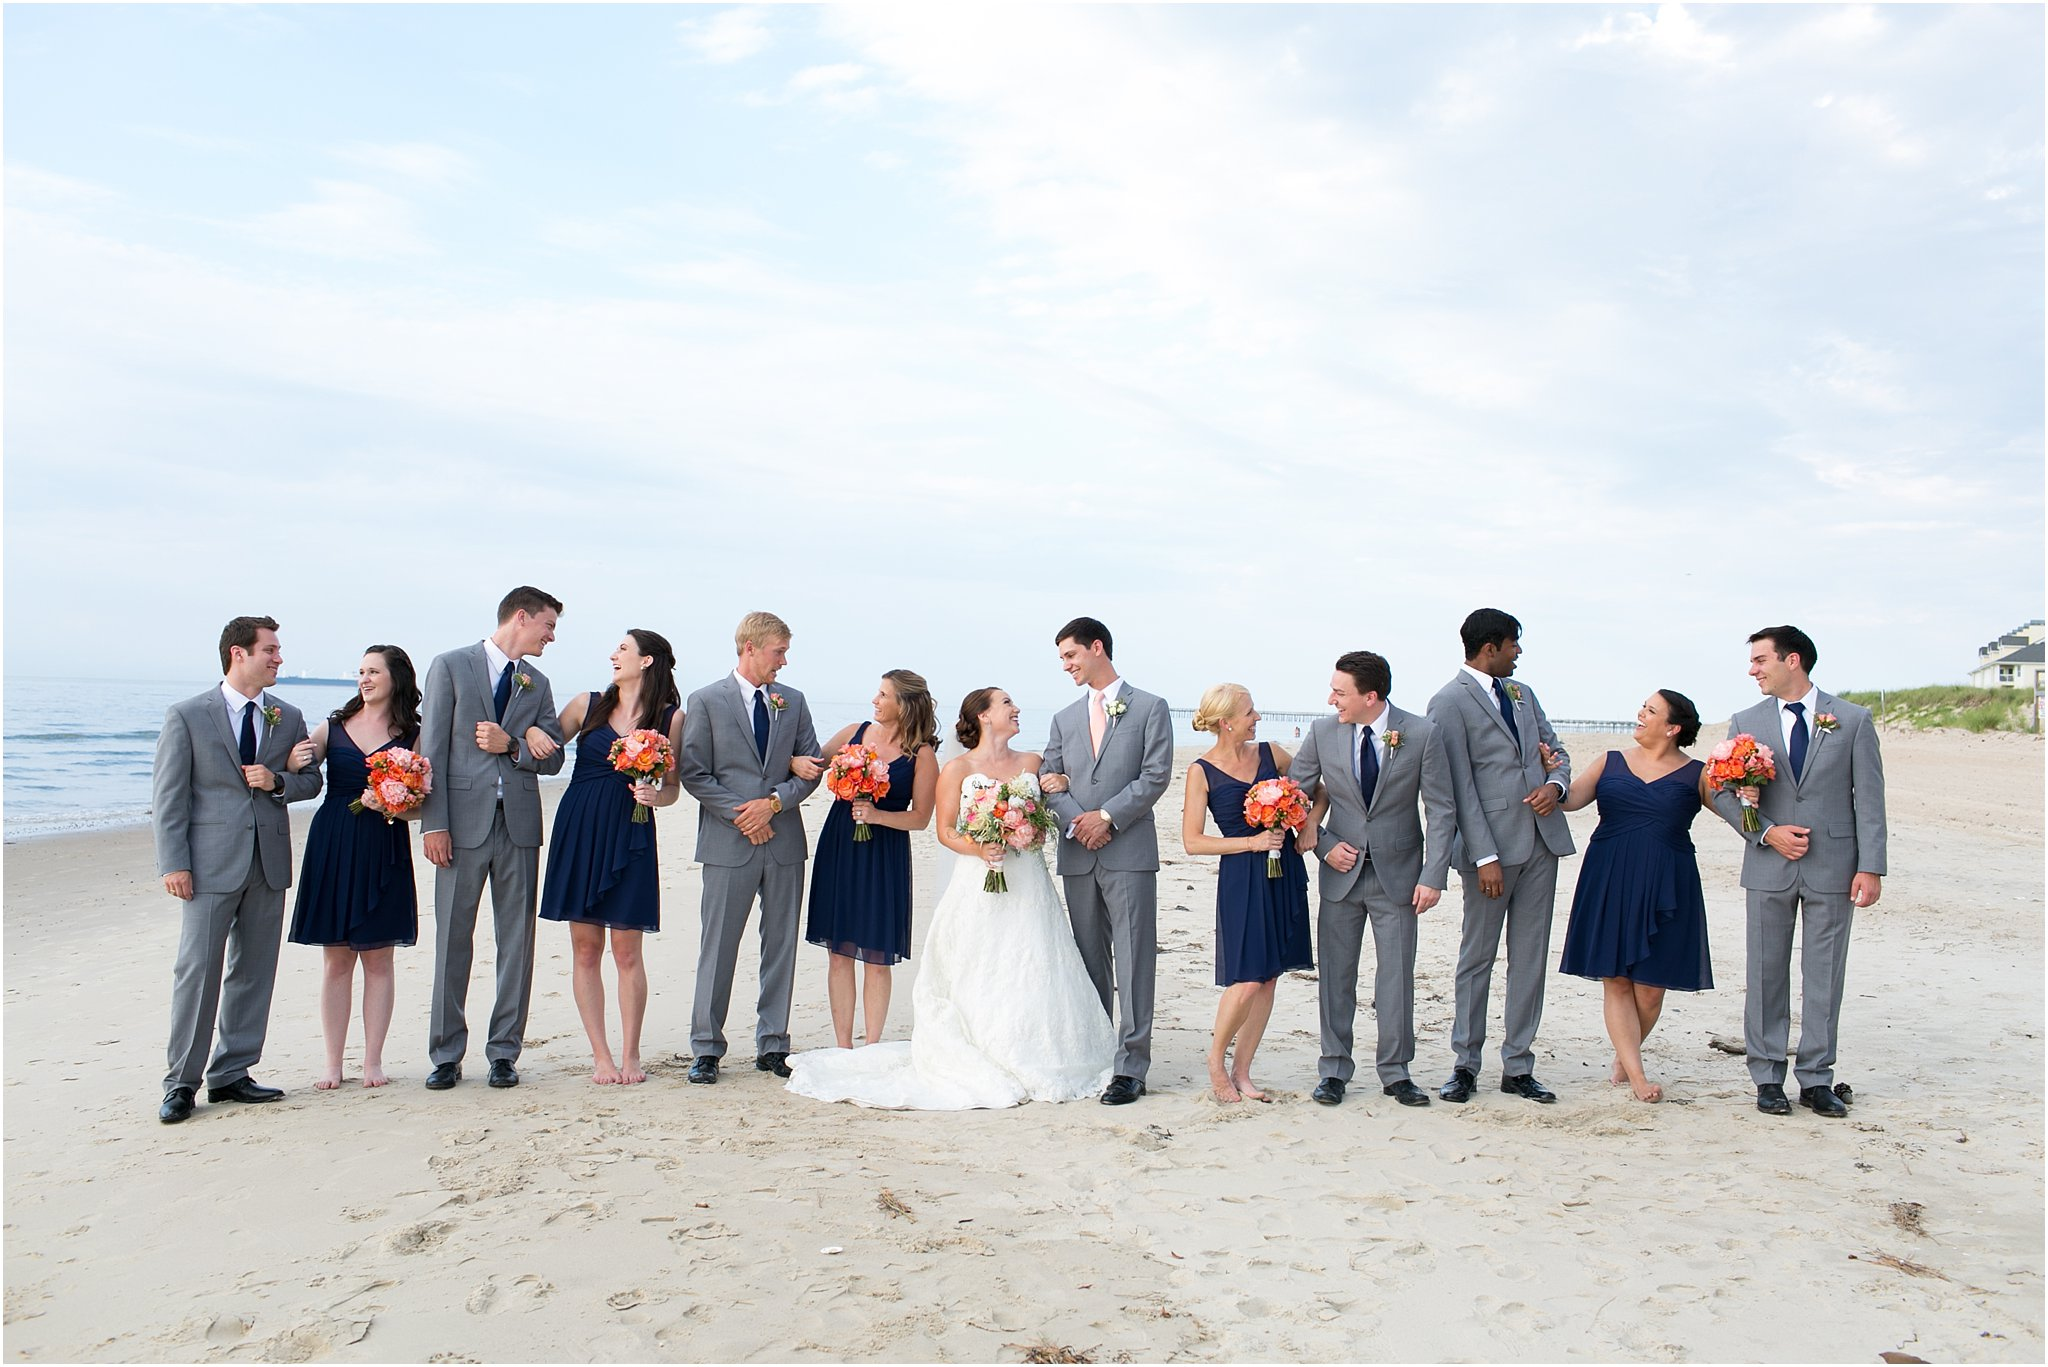 jessica_ryan_photography_wedding_photography_virginiabeach_virginia_candid_authentic_wedding_portraits_marina_shores_yacht_club_chesapeake_bay_1856